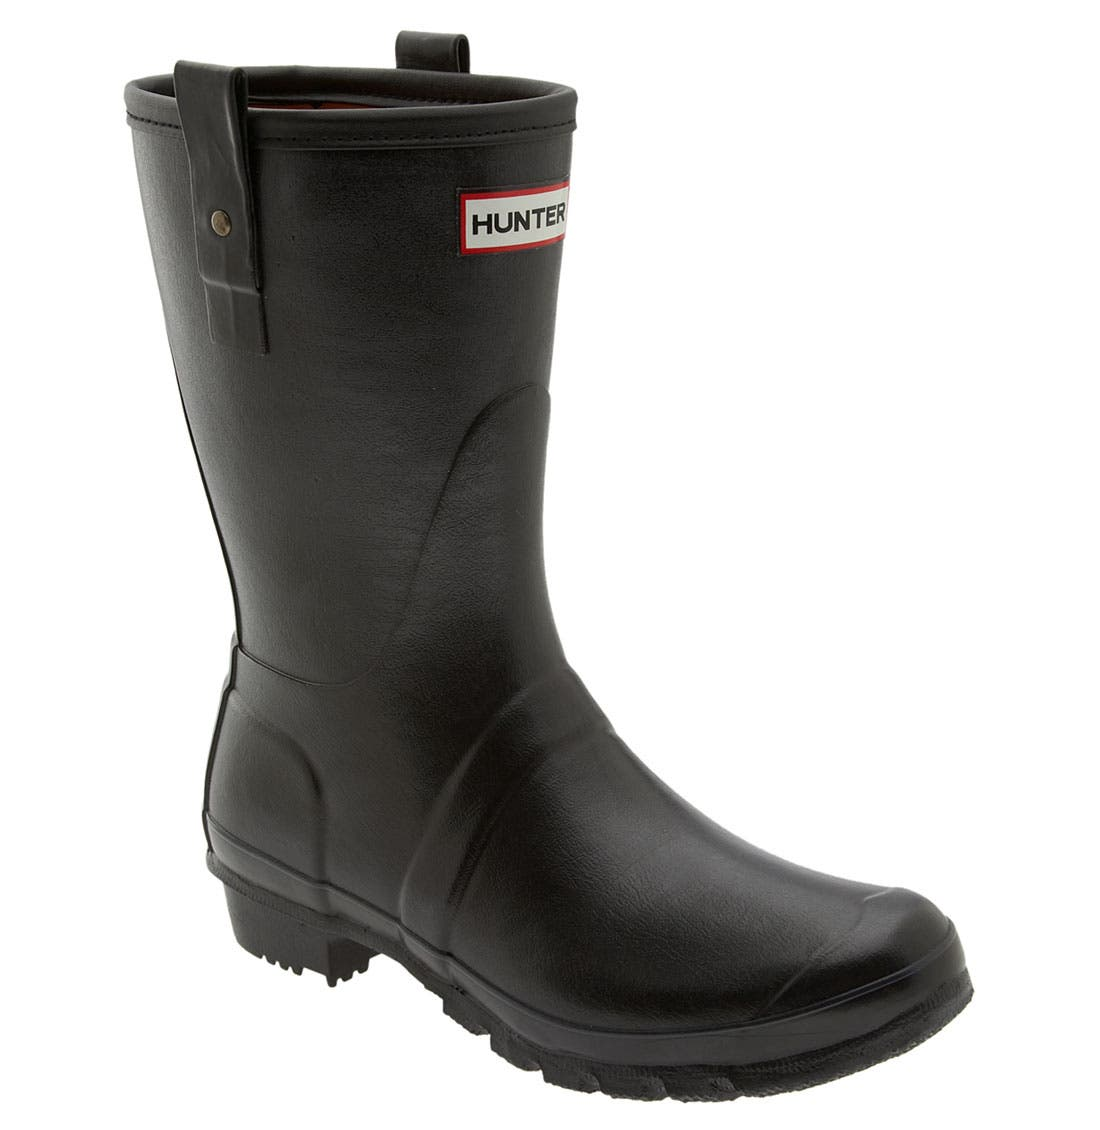 Alternate Image 1 Selected - Hunter 'Original Short' Rain Boot (Men)